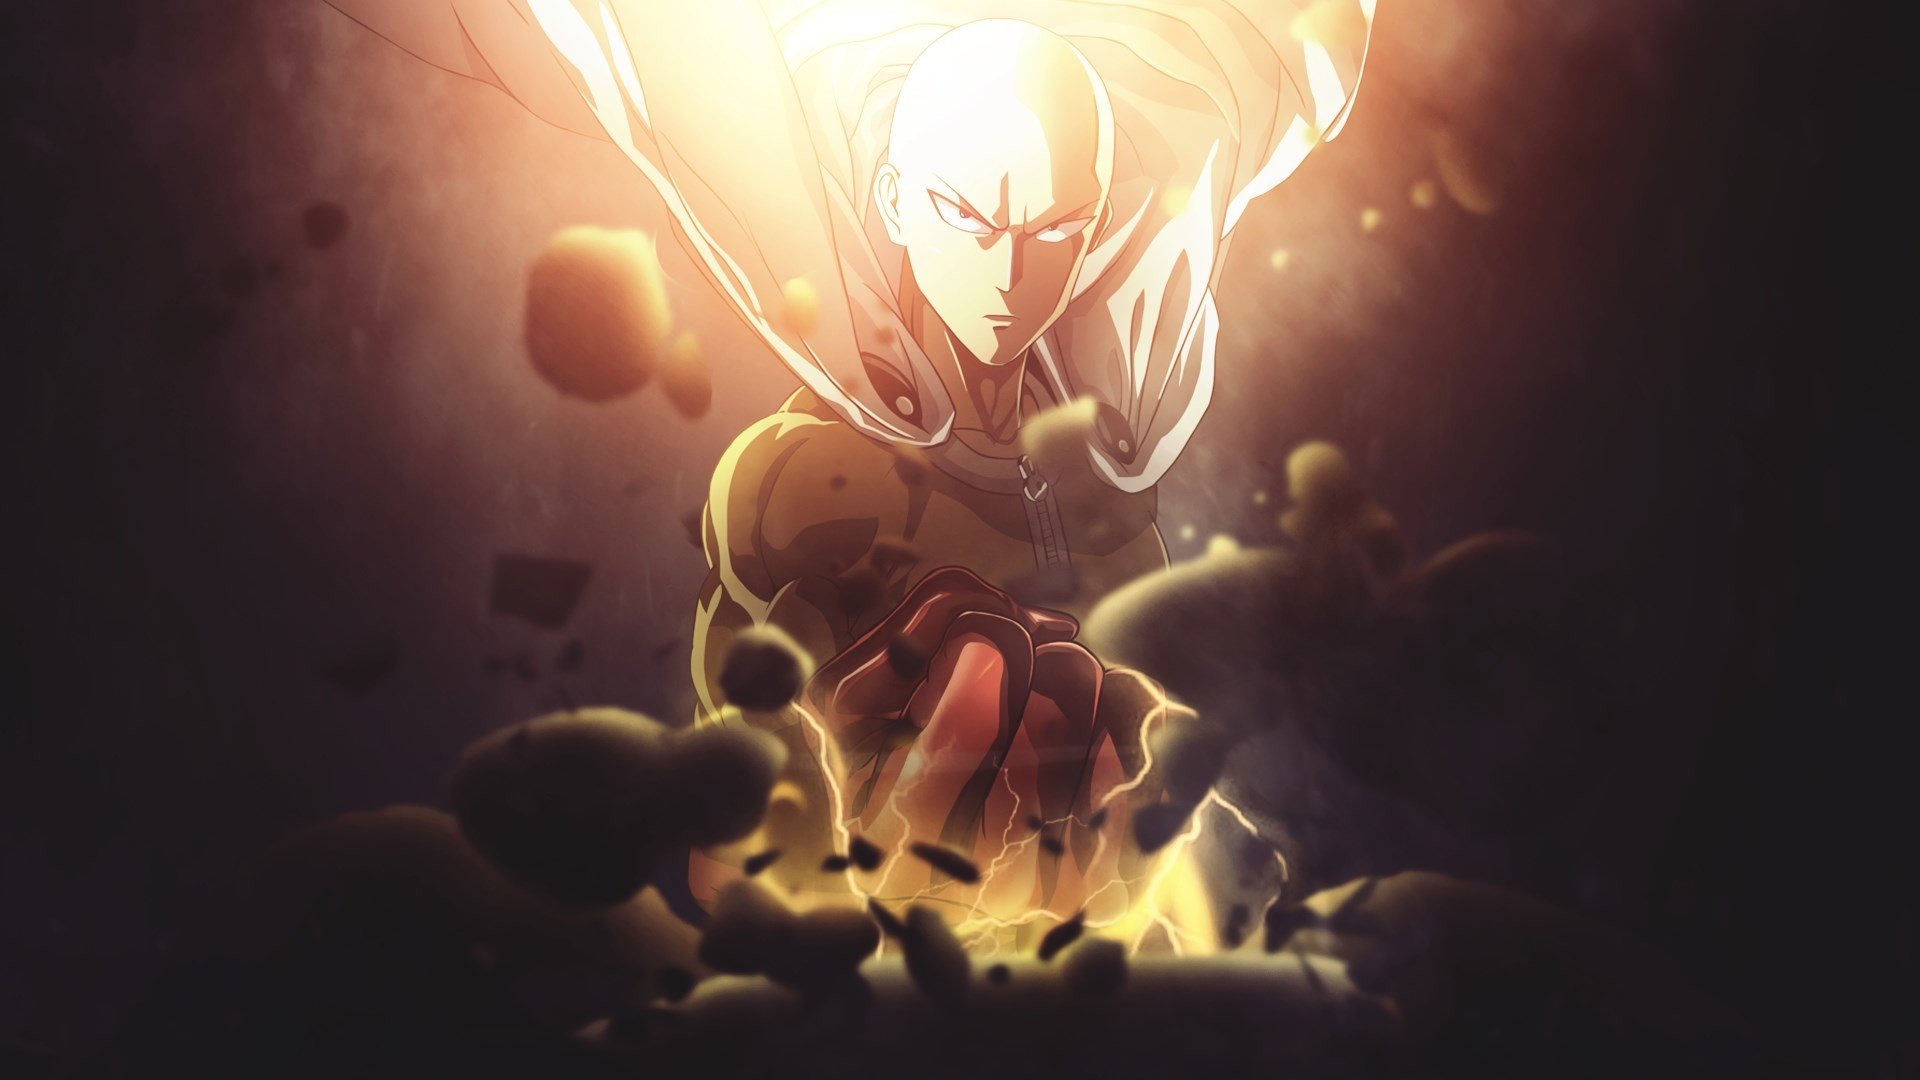 1920x1080 five finger death punch 1080p windows. one punch man 1080p high quality